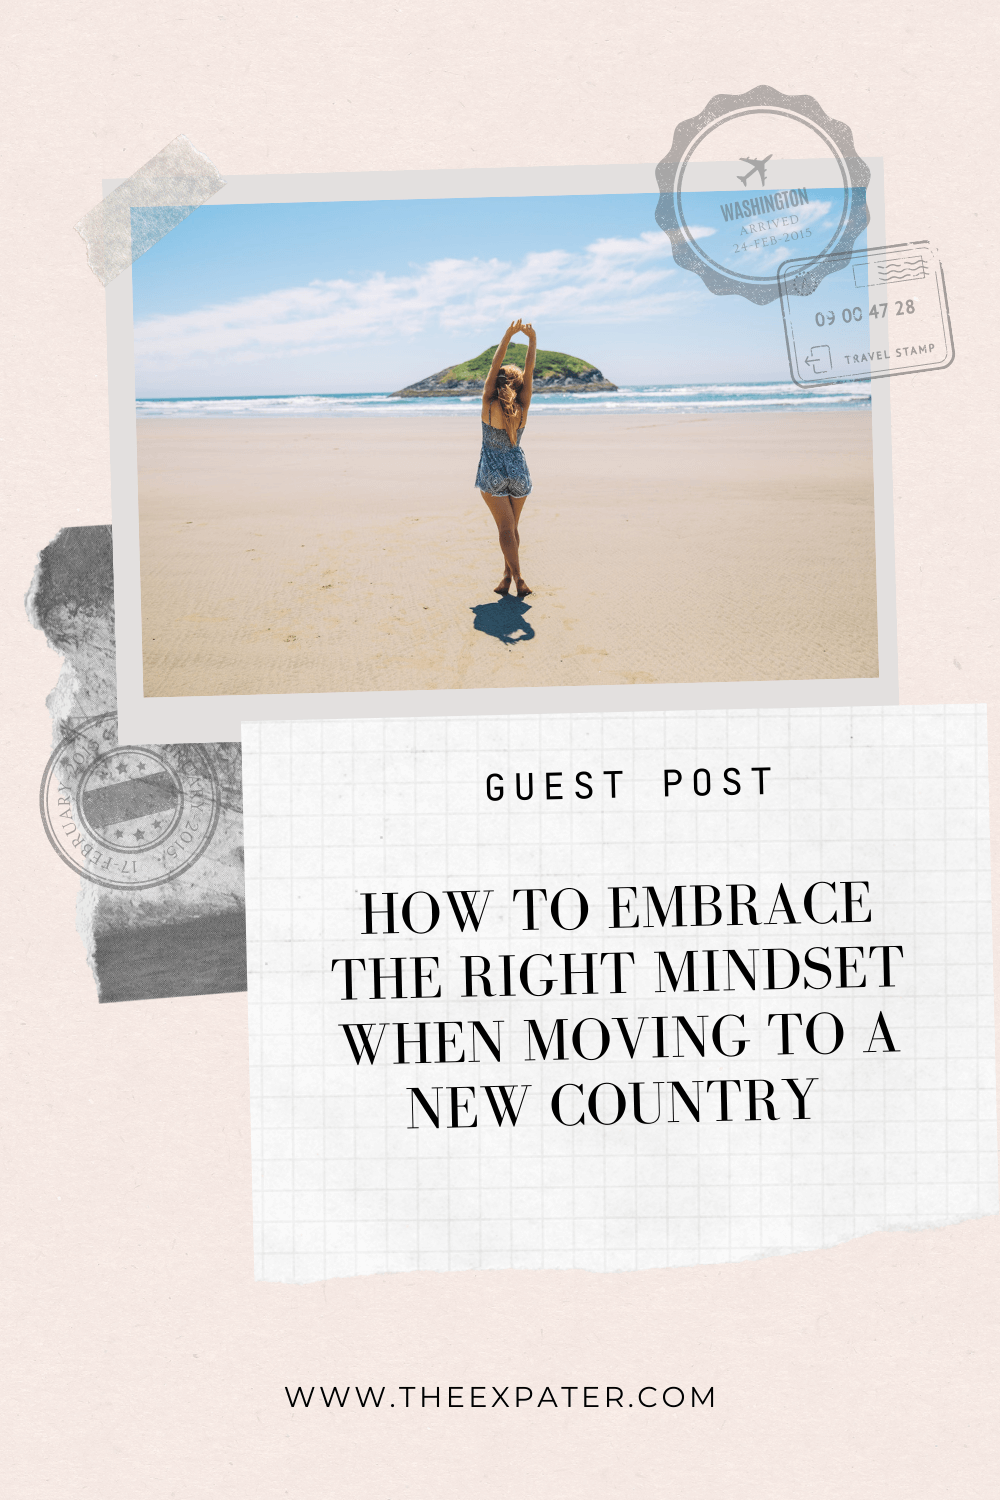 How to embrace the right mindset when moving to a new country